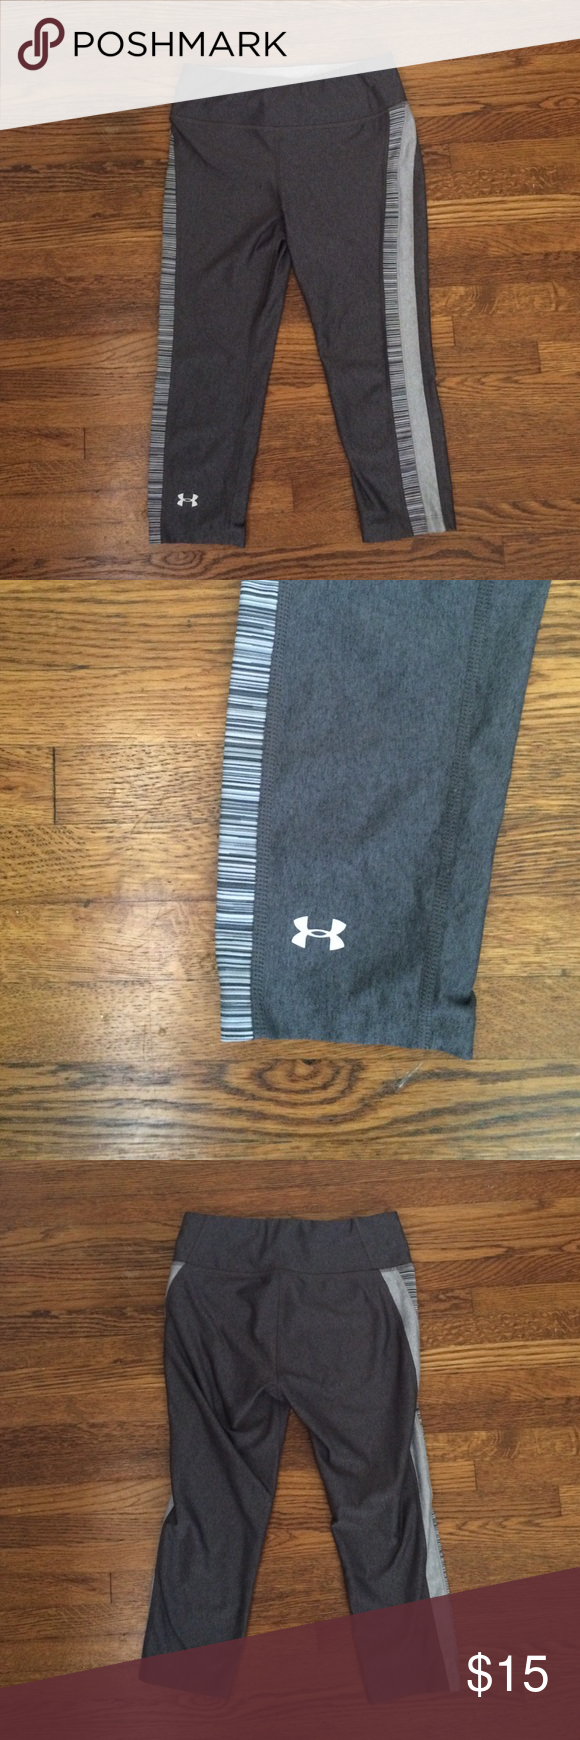 Under Armour Heat Gear Athletic Capri Leggings Very form-fitting. Still in great condition! Has a small pocket in back. Under Armour Pants